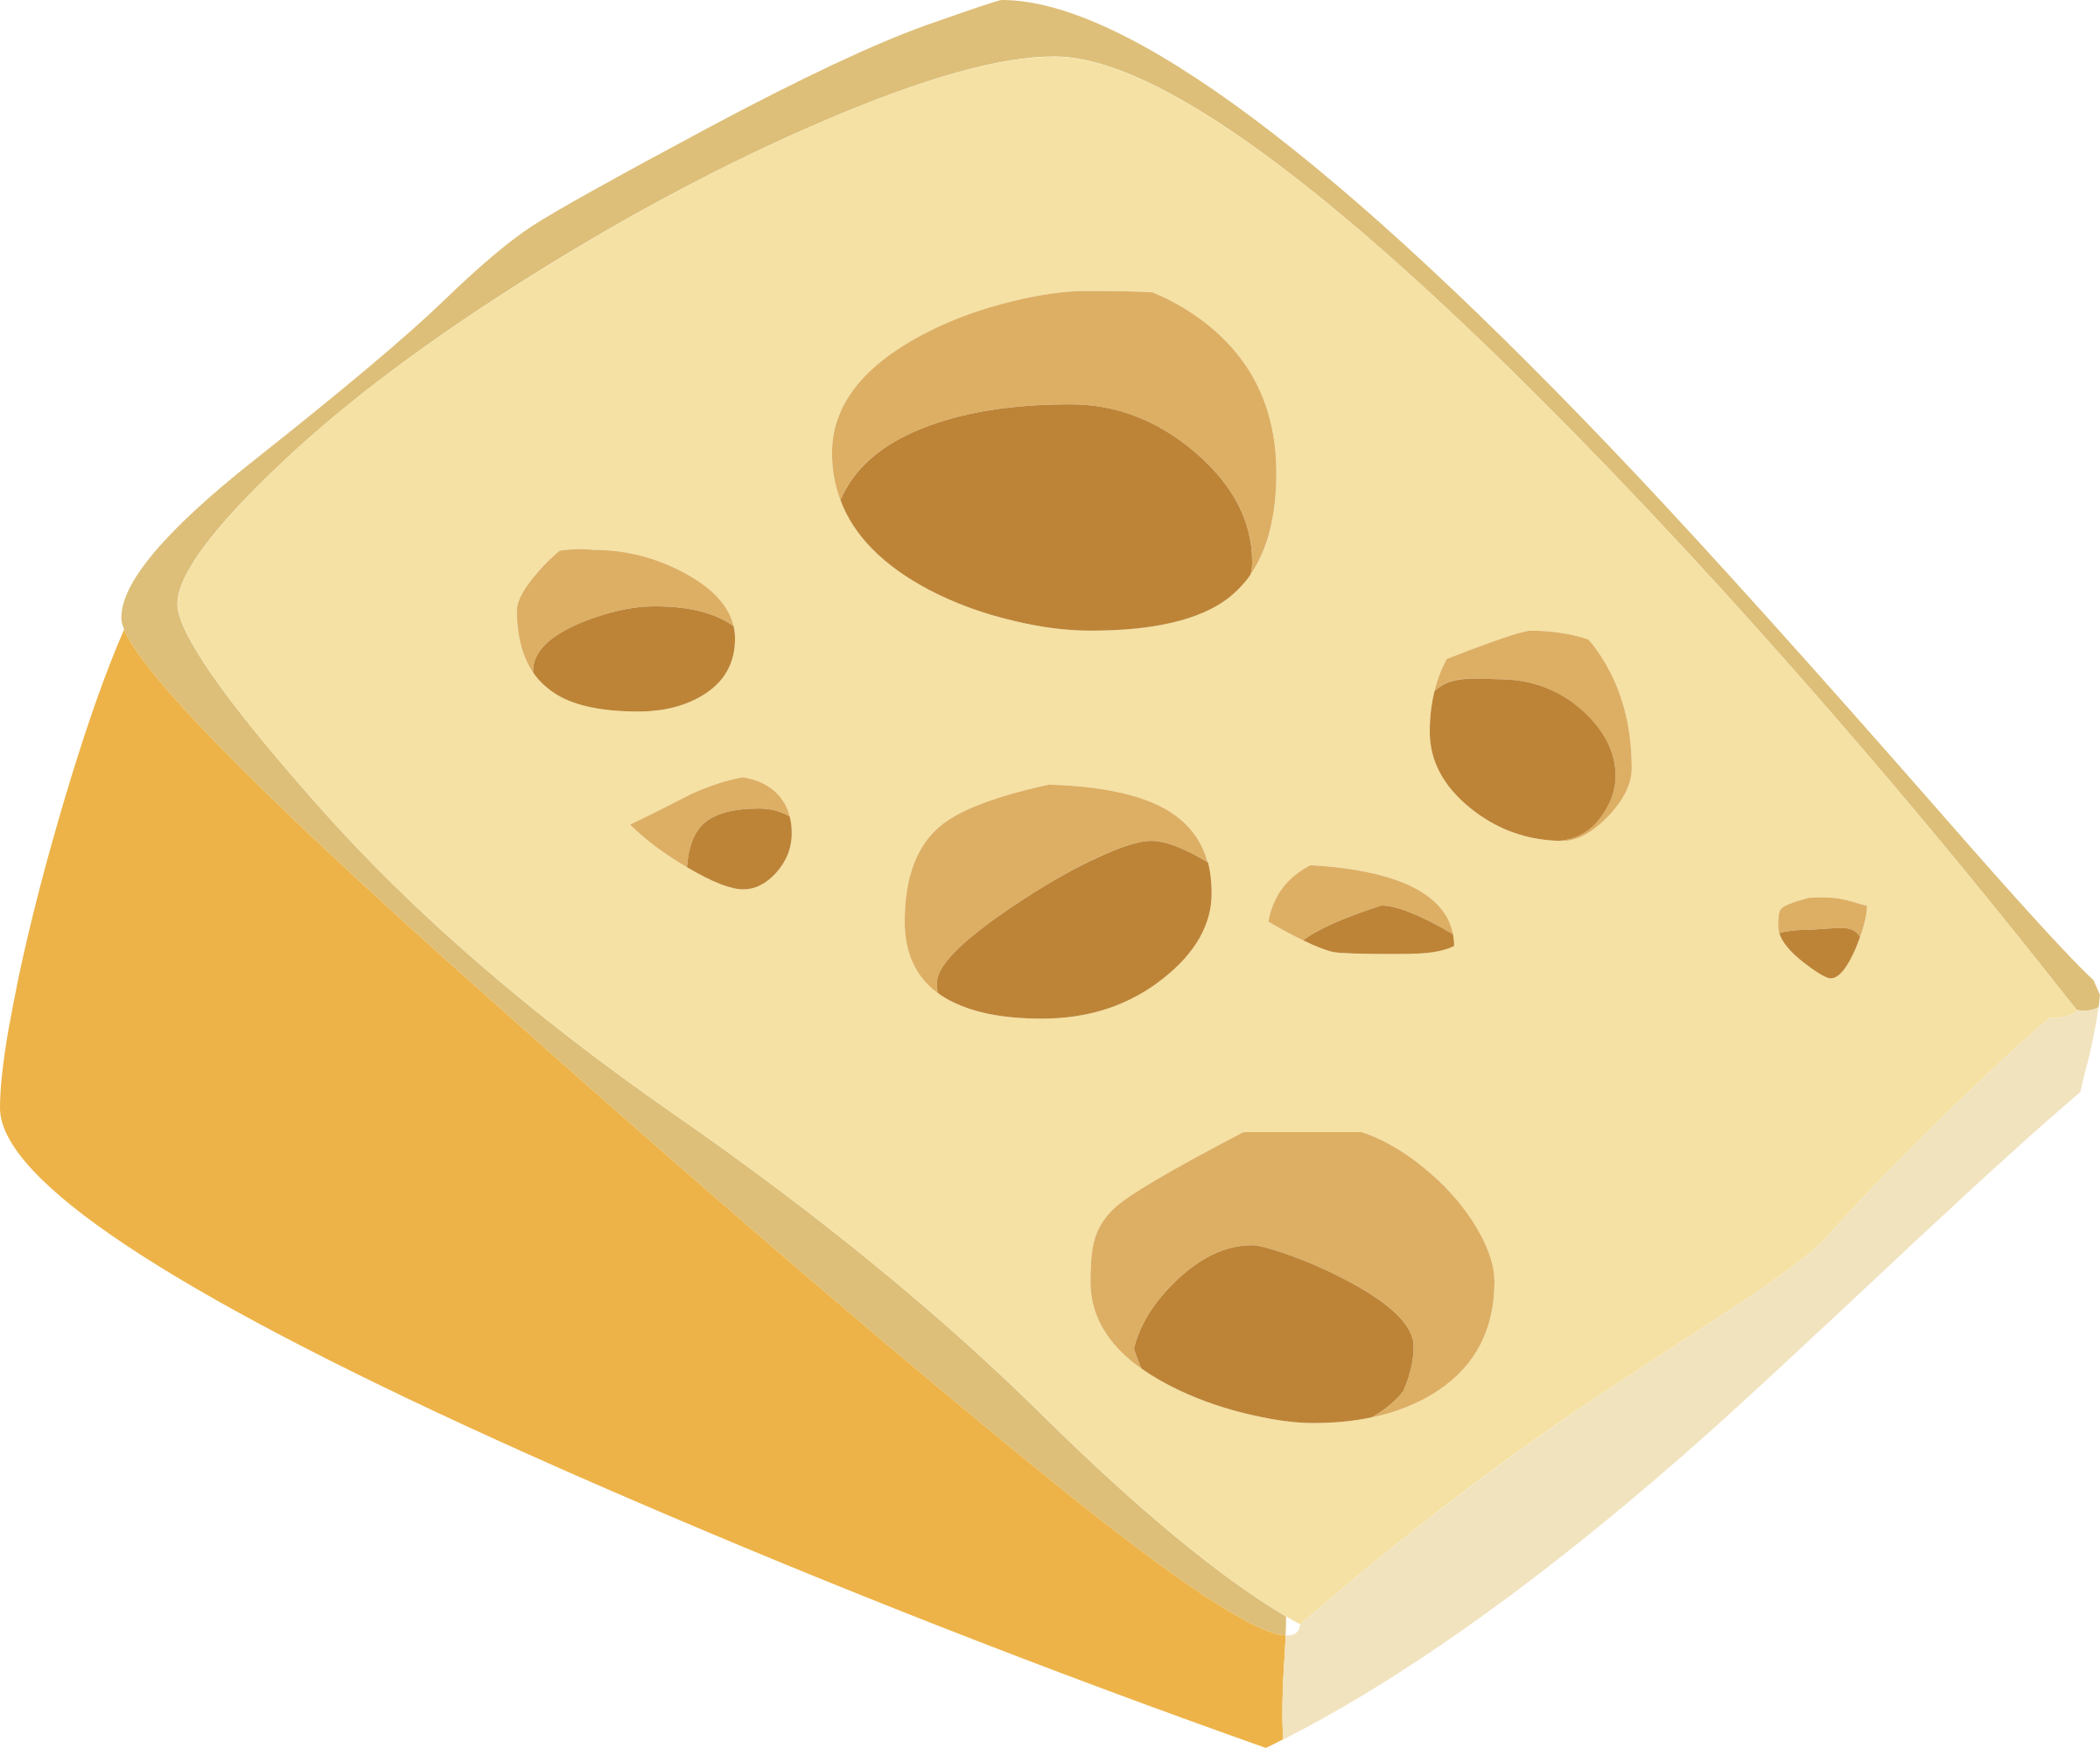 Food Cheese Stinky by glitch